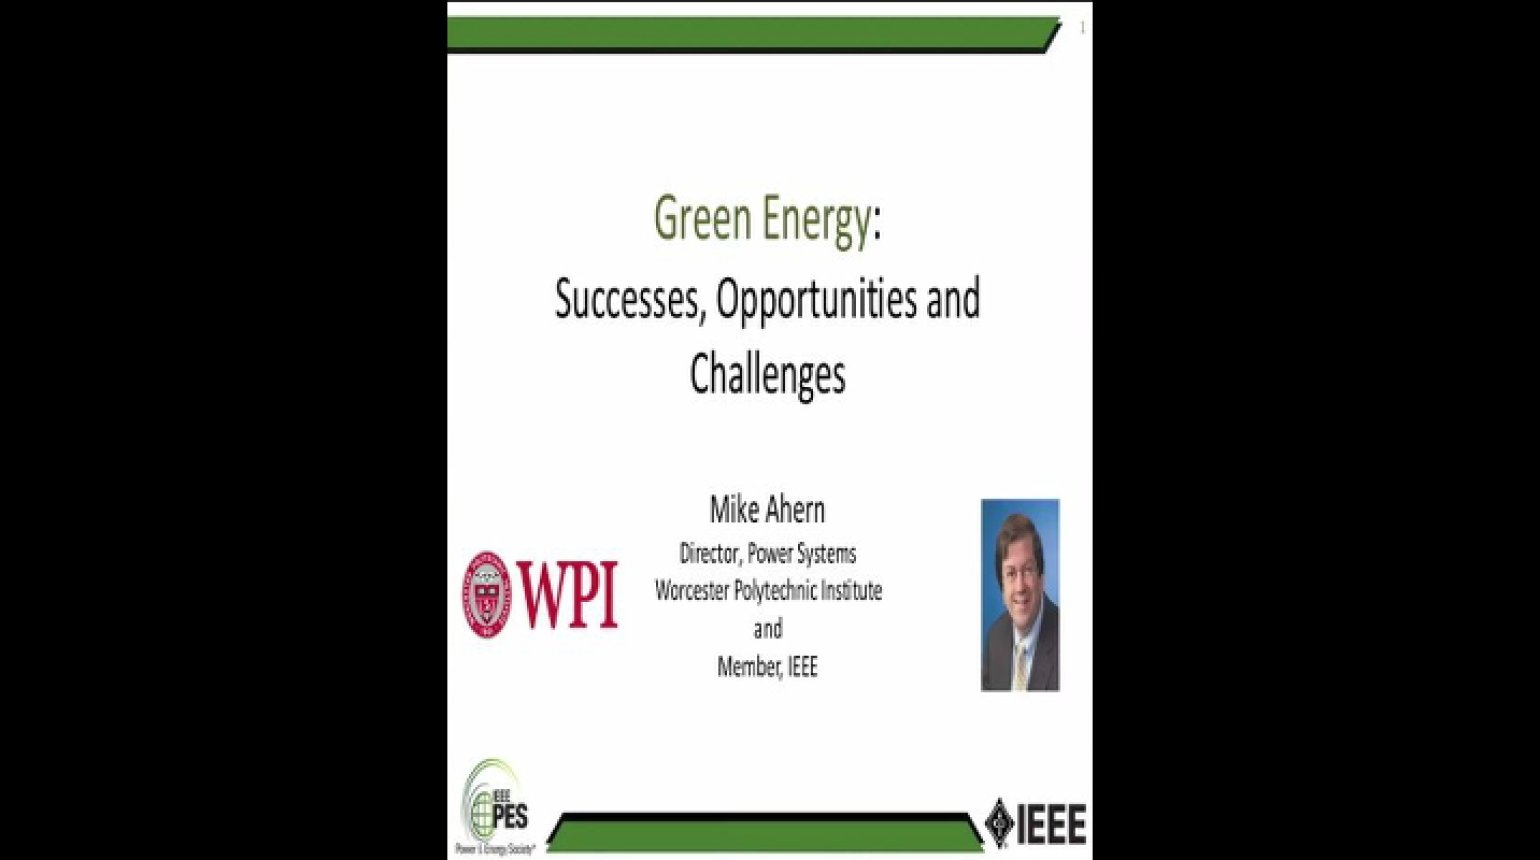 Green Energy Successes, Opportunities, Challenges